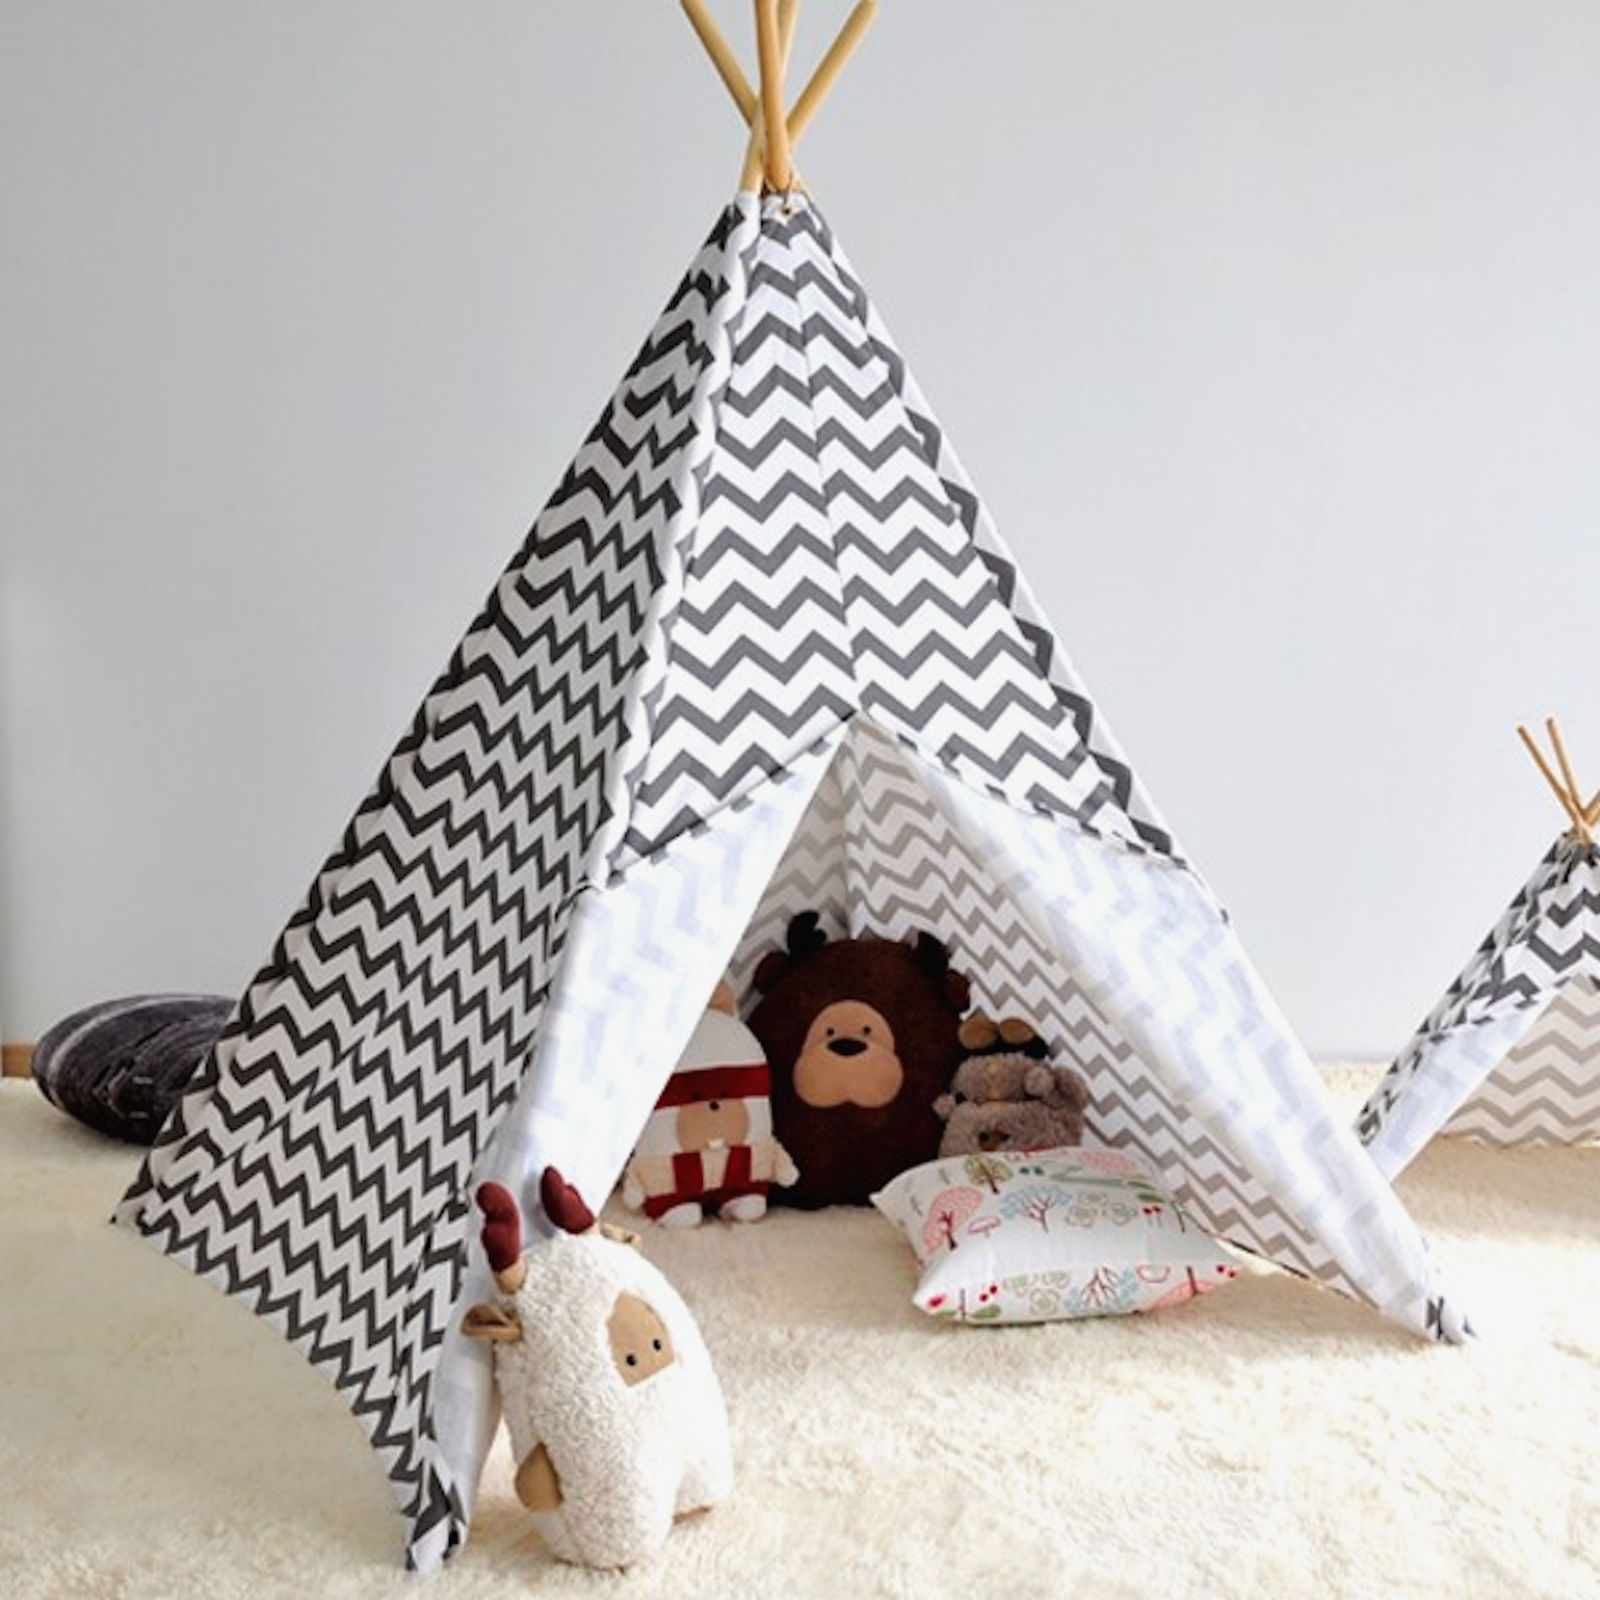 Teepee Kids 4baby Large Kids Teepee Baby Play Tent Chevron Grey